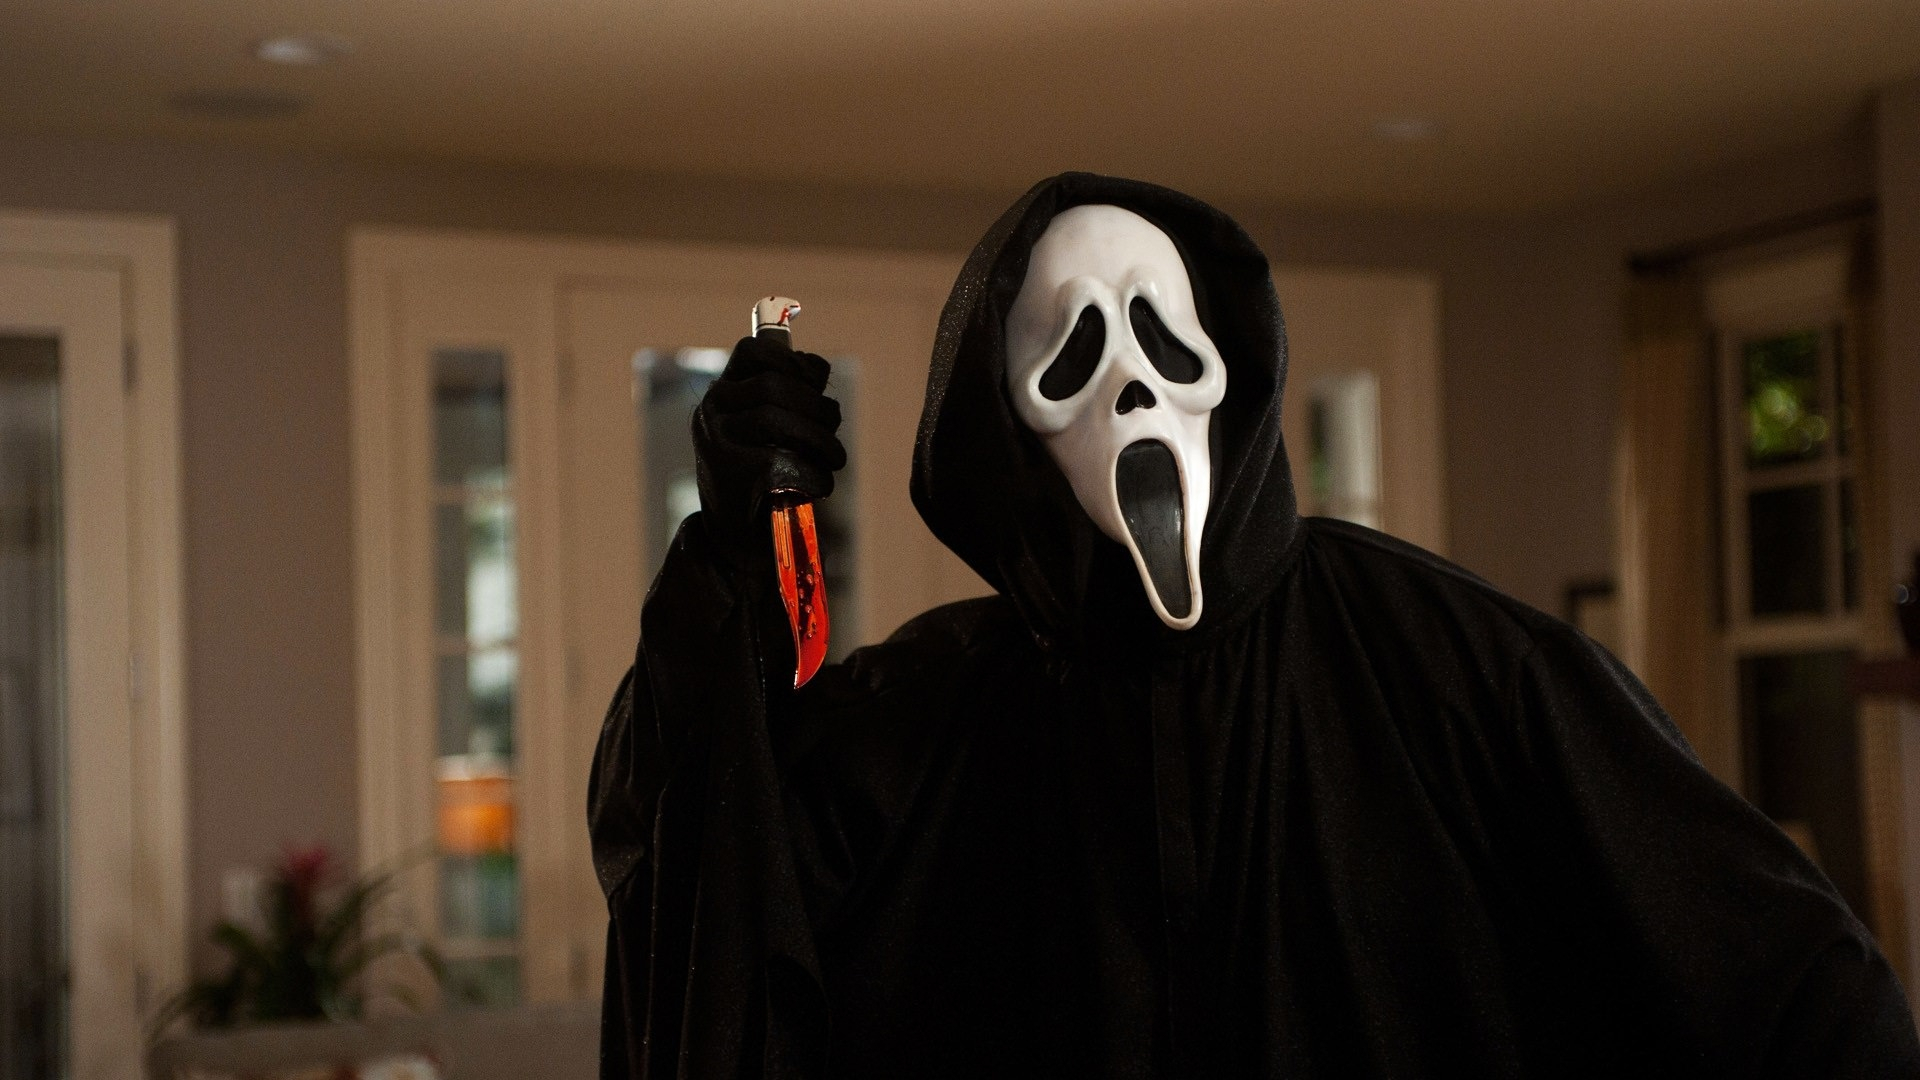 Ghostface in Scream Wallpaper